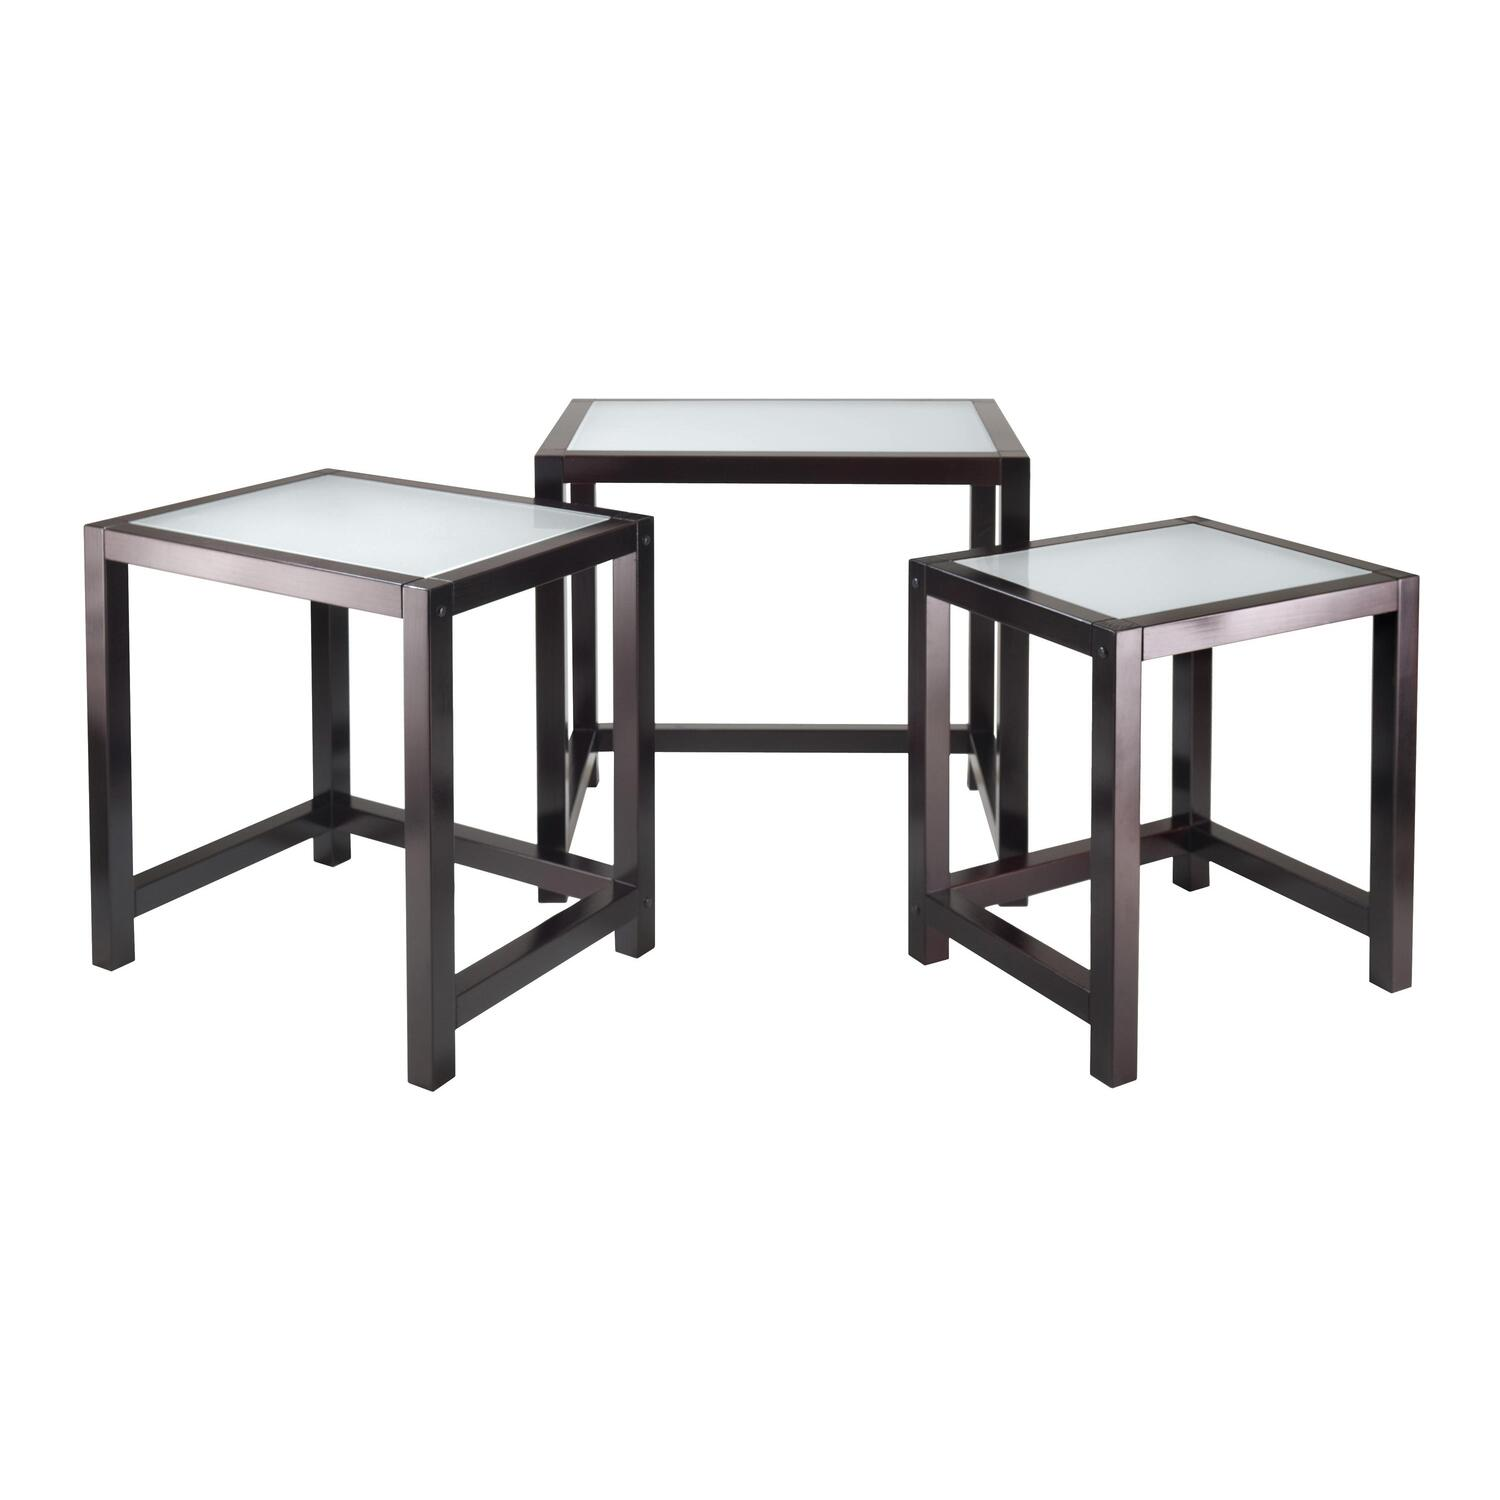 Winsome copenhagen 3 pc nesting table set with glass top for Glass top nesting tables